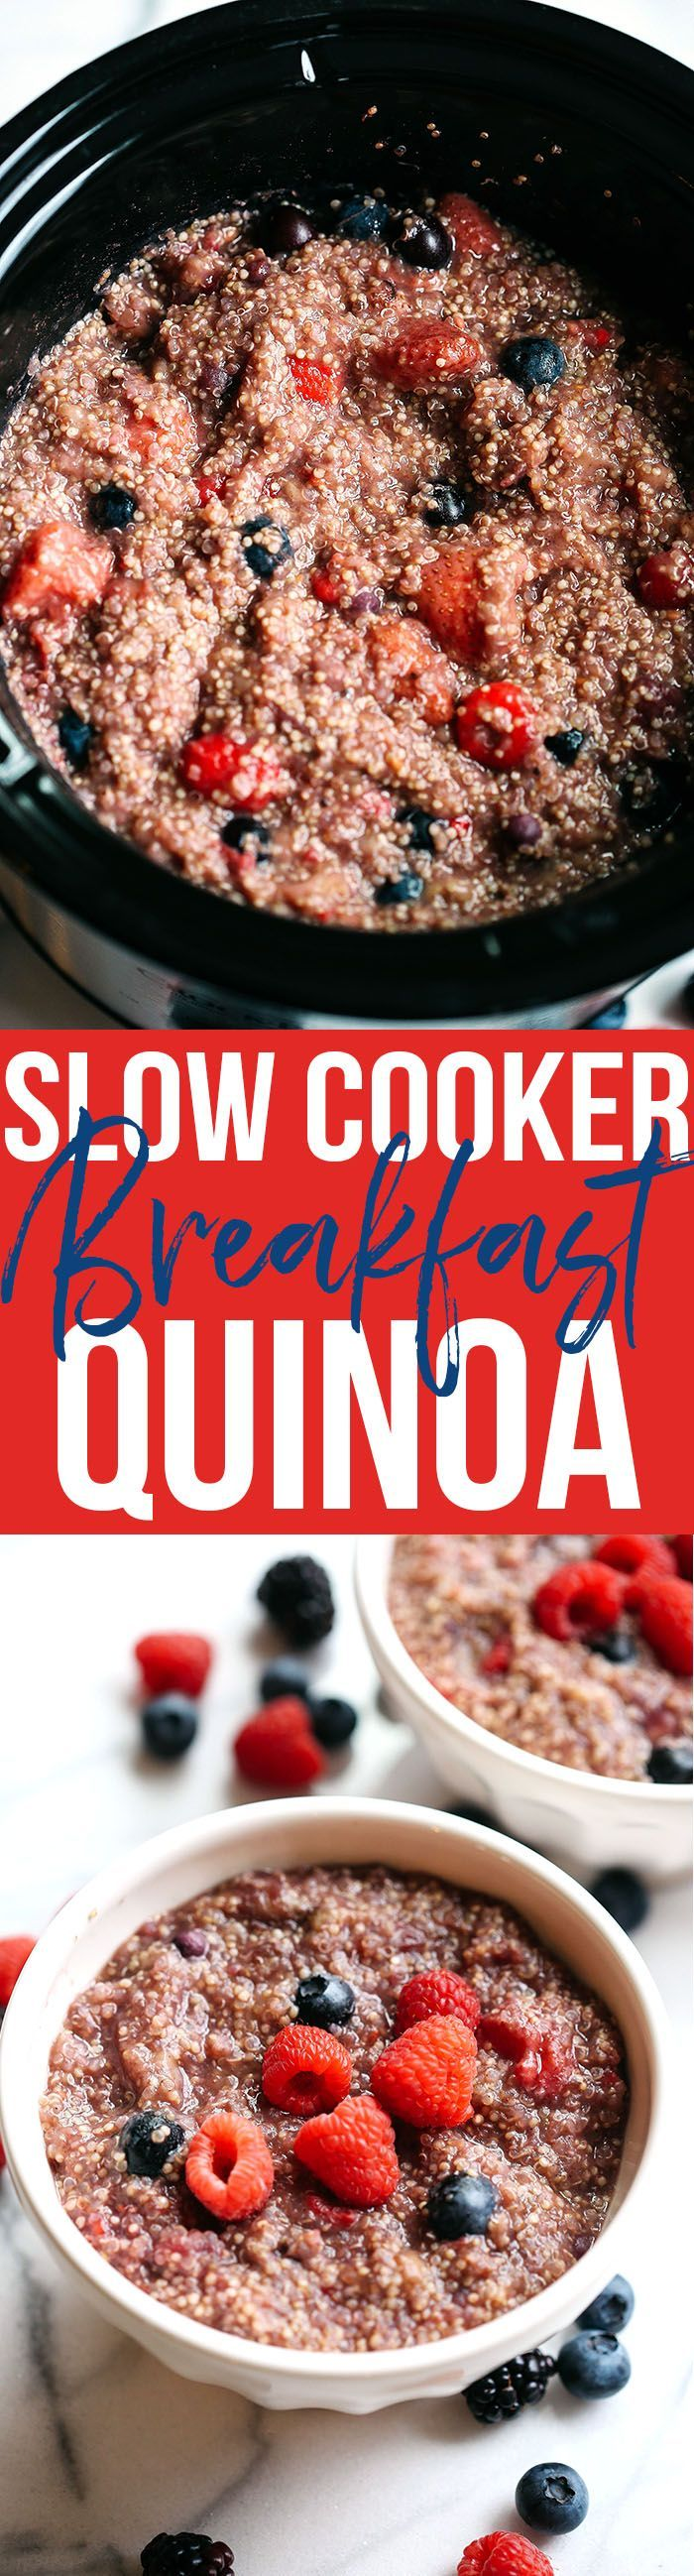 This protein-packed Slow Cooker Berry Breakfast Quinoa is the perfect way to start your mornings and can easily be made by throwing just a few simple ingredients into your crock pot!